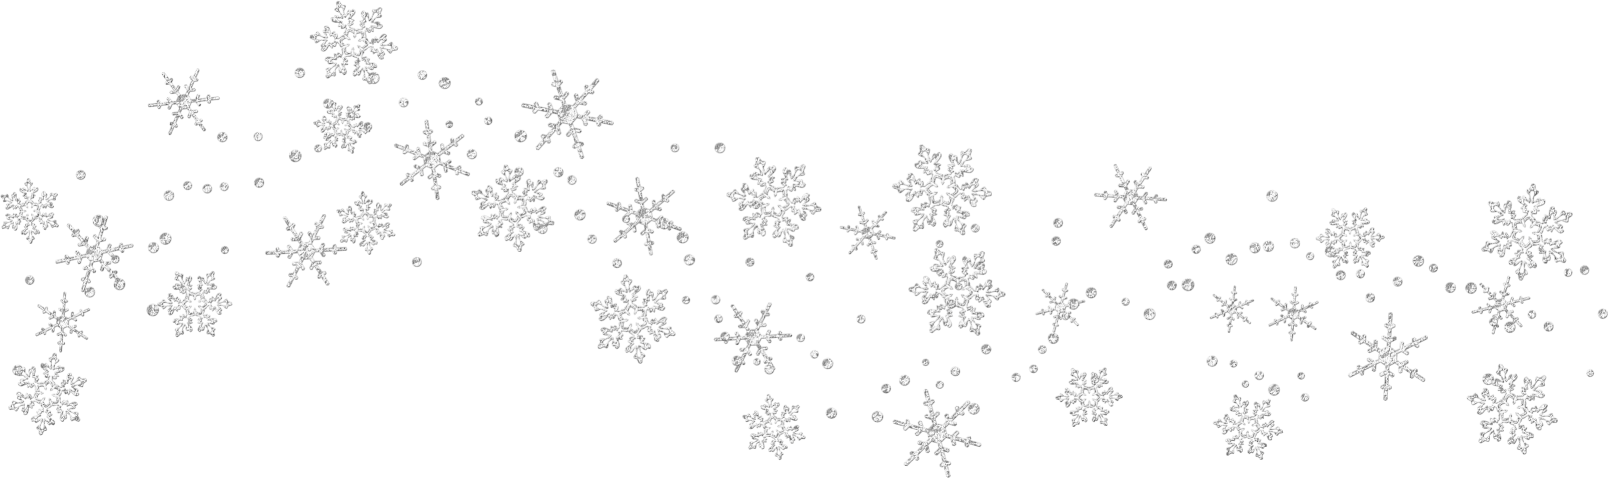 Transparent snowflakes clipart graphic free stock Snowflakes Clipart | Free Download Clip Art | Free Clip Art ... graphic free stock